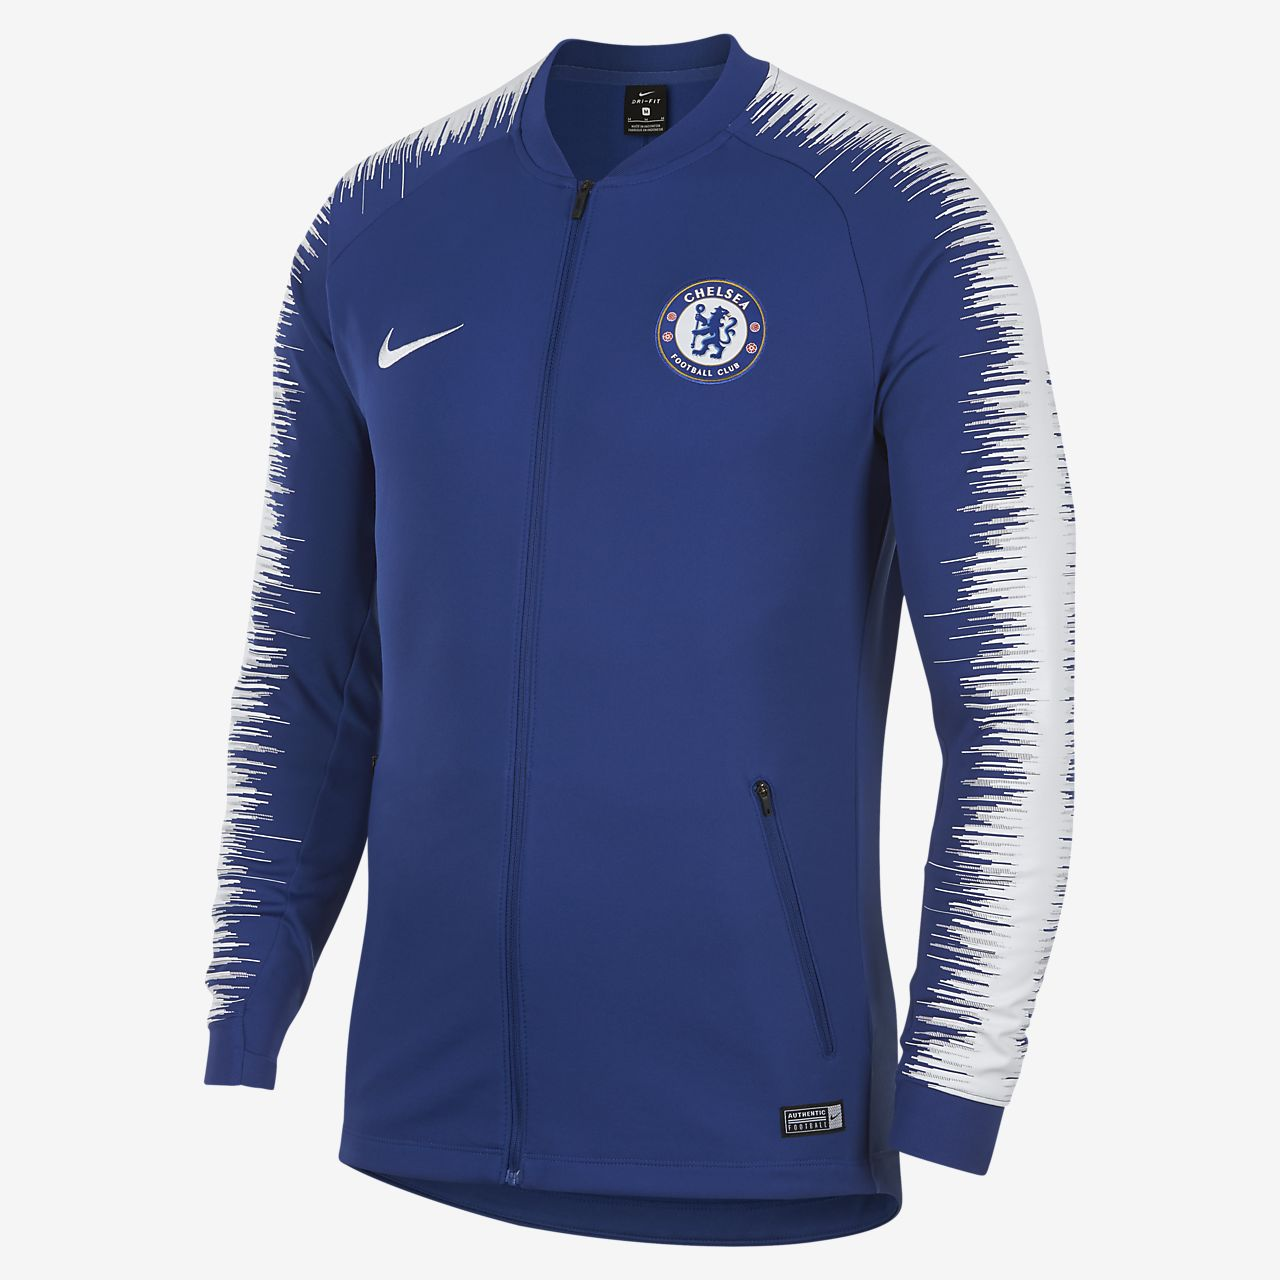 4fdf9c2d0 Chelsea FC Anthem Men's Football Jacket. Nike.com LU